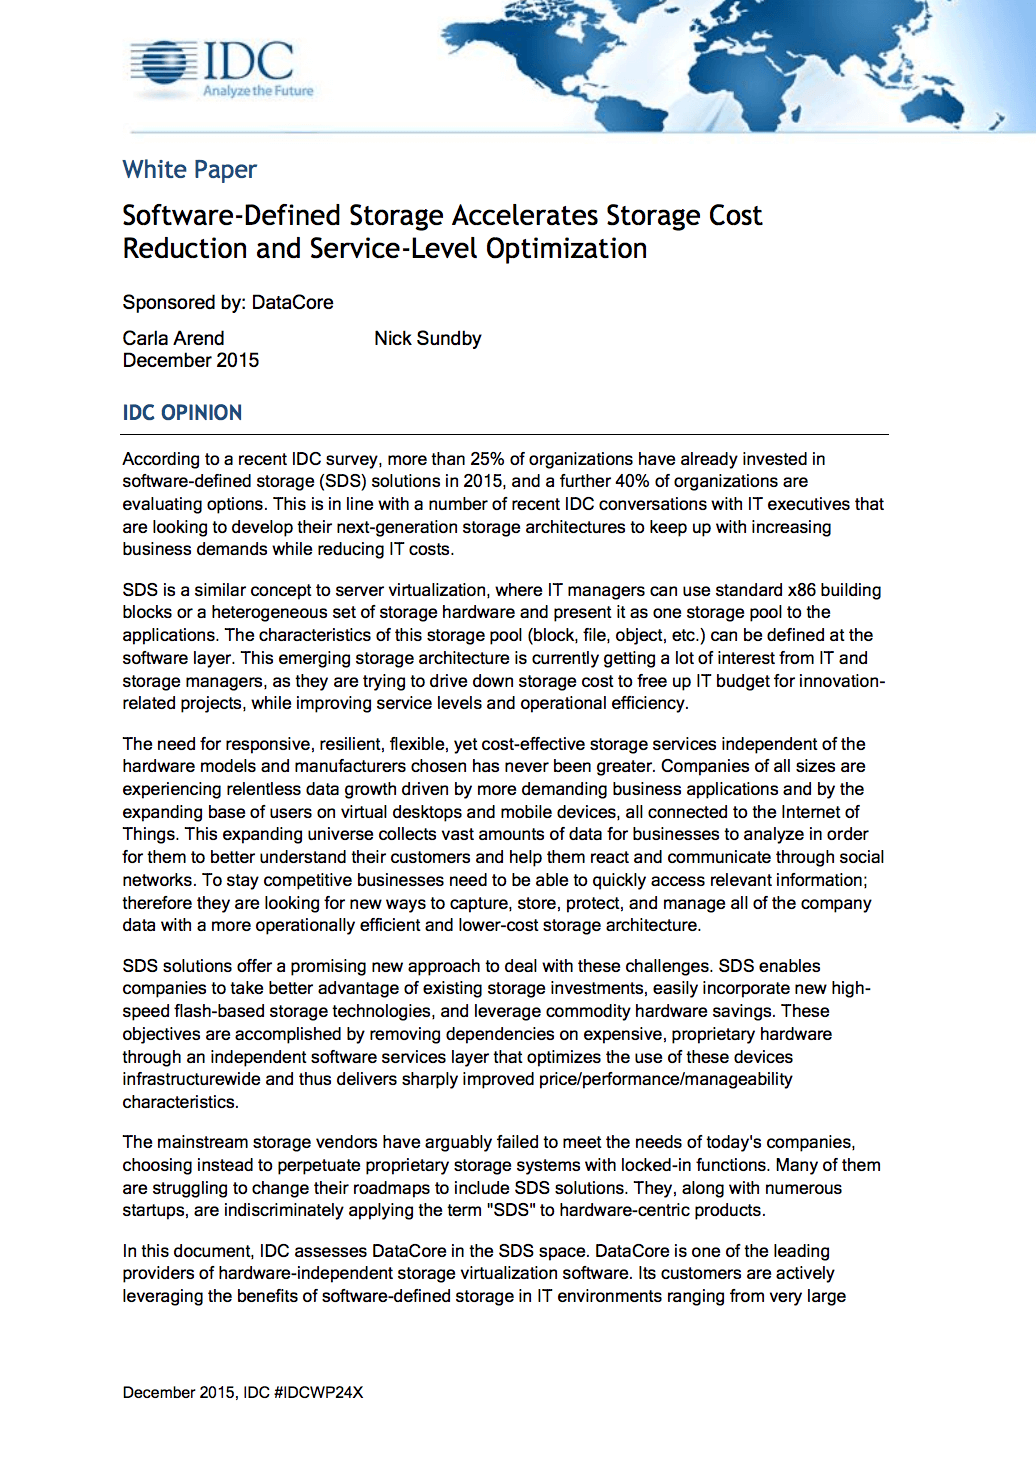 sds accelerates storage cost reductino and service level optimzation thumb